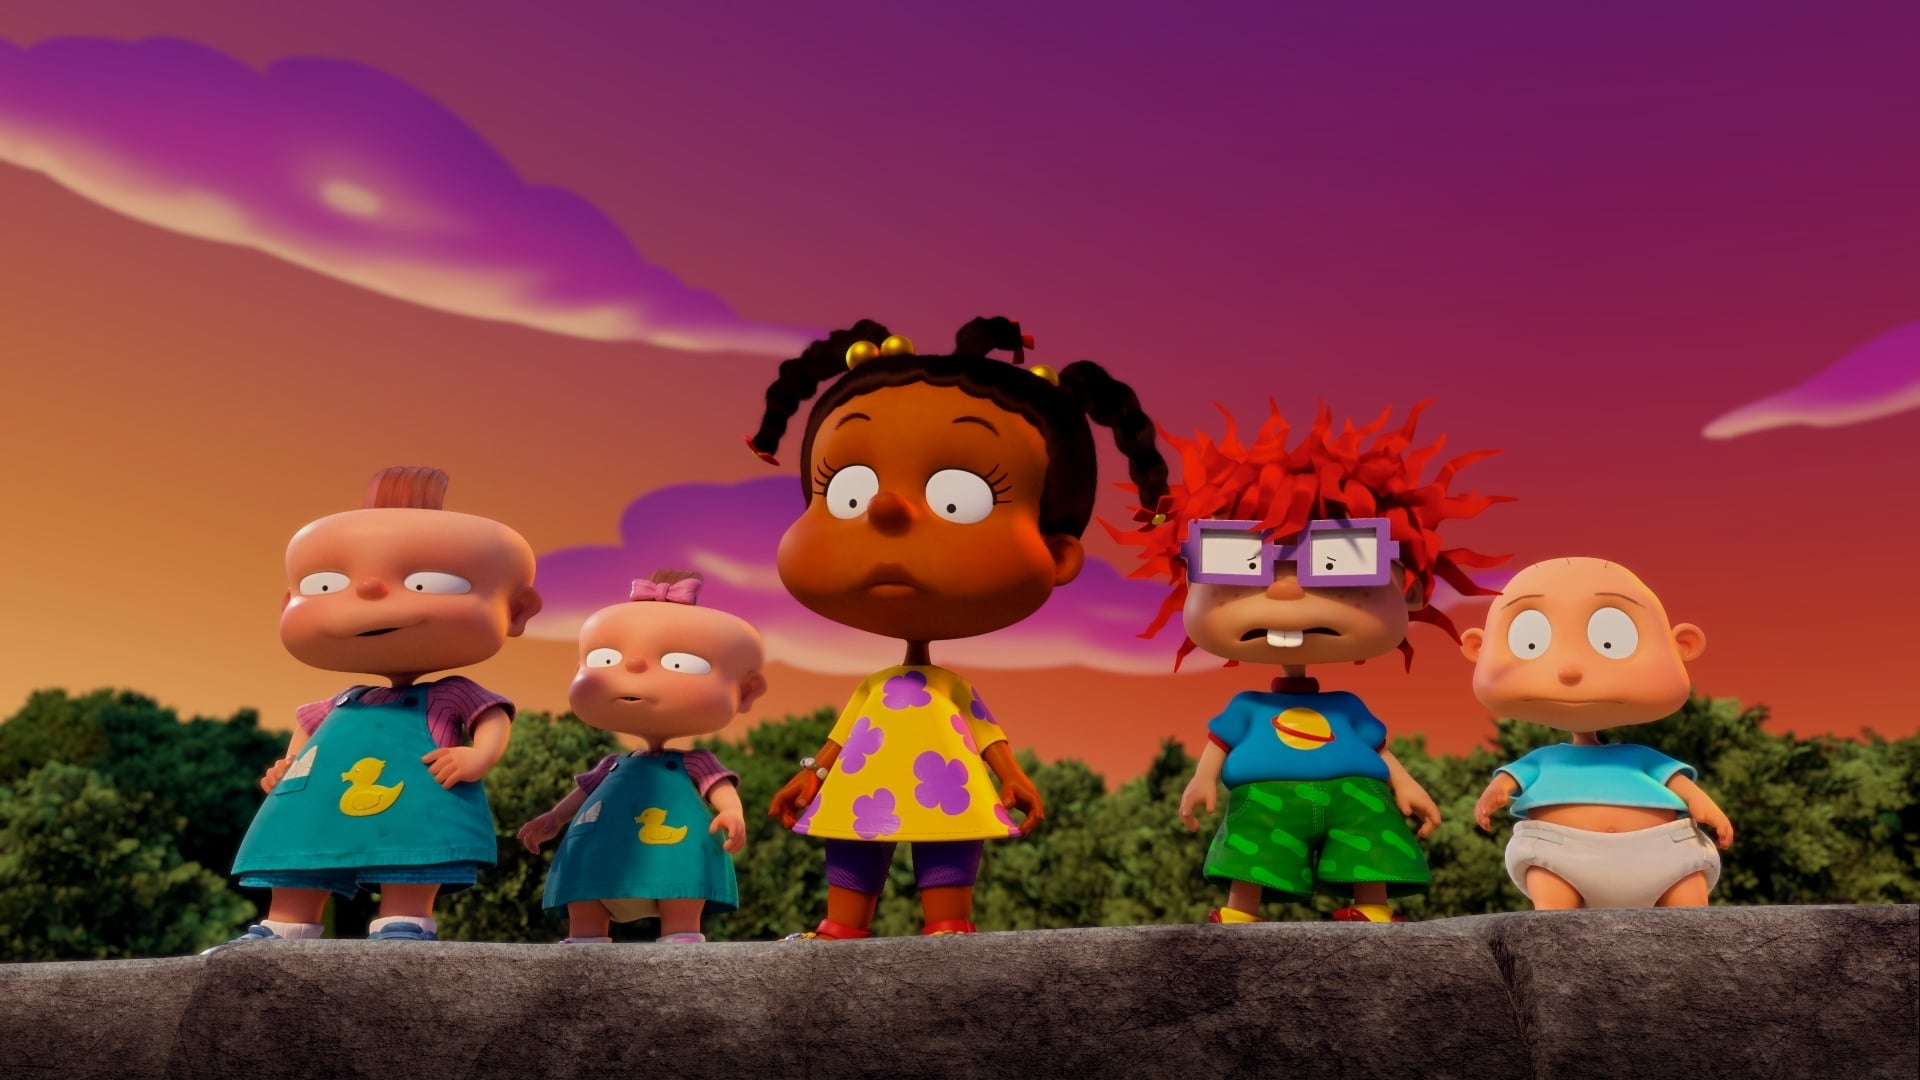 Pictured: The babies of the Paramount+ series RUGRATS. Photo Cr: Nickelodeon/Paramount+ ©2021, All Rights Reserved.